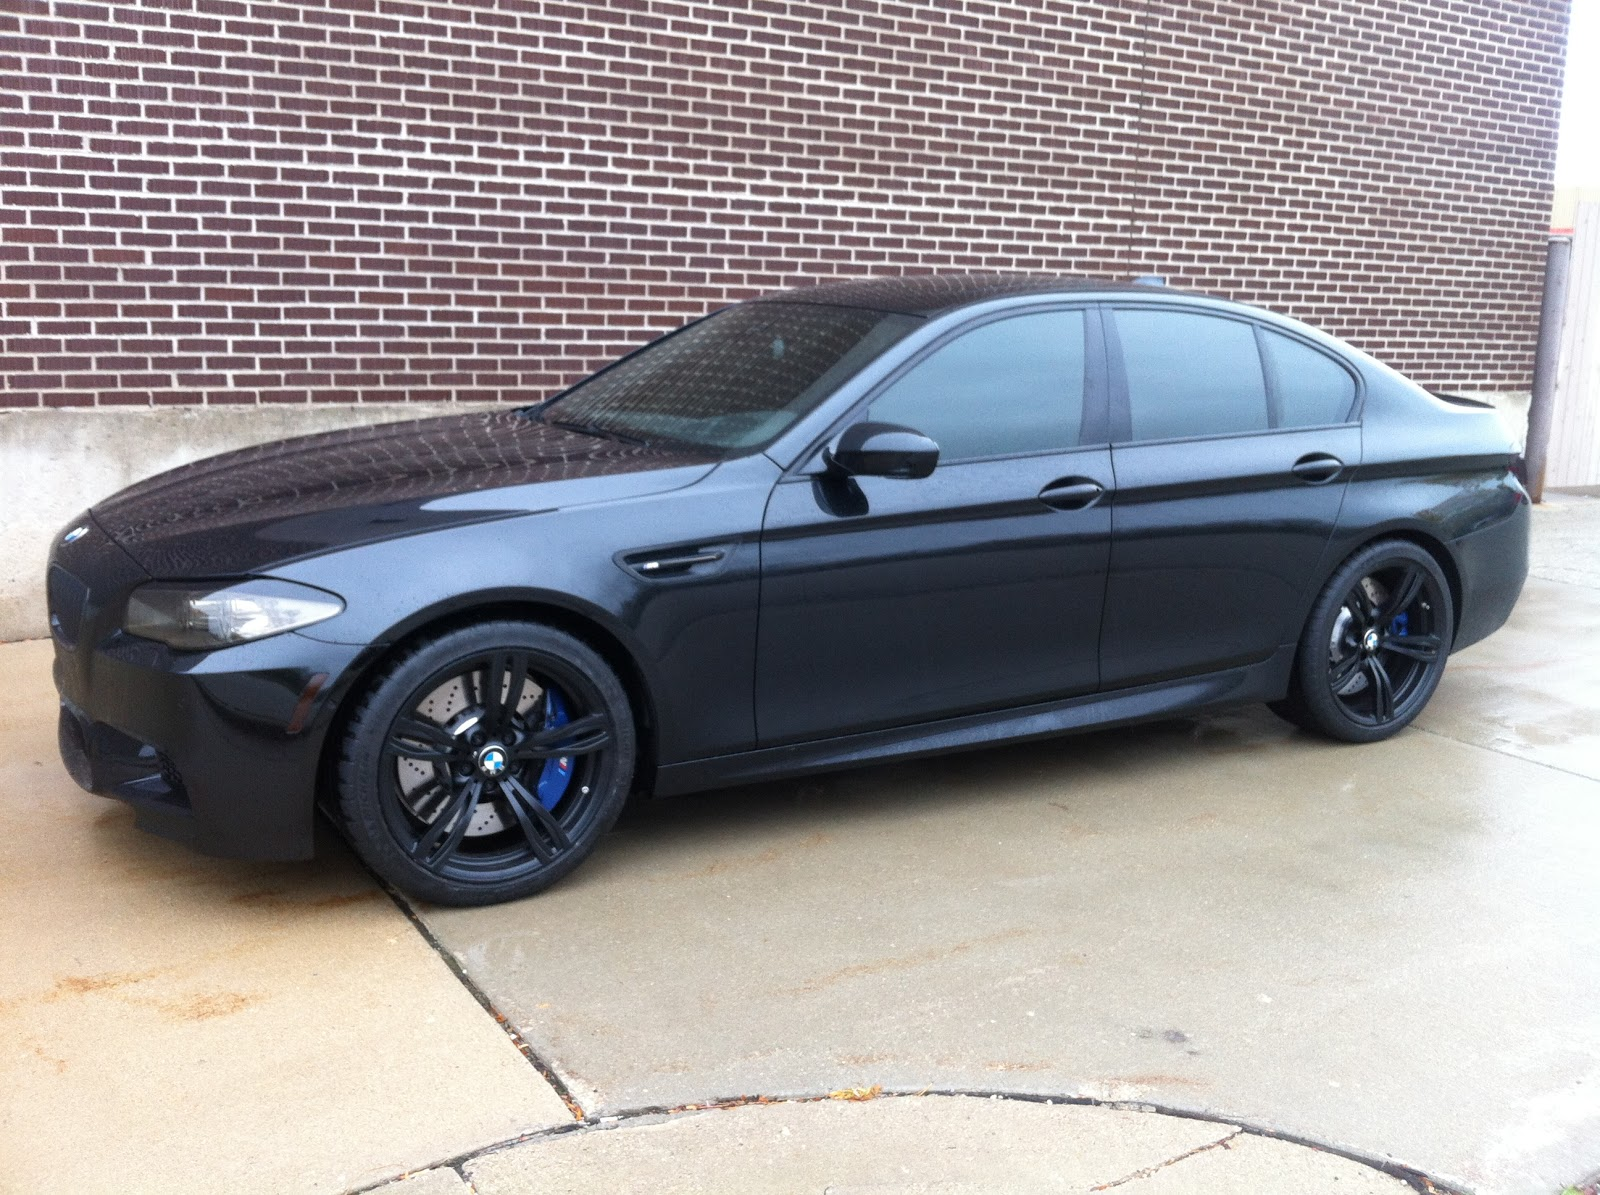 bmw m5 2013 black. the stock m alloy wheels were powdercoated matte black. chrome door handle inserts and fender vents done in black carbon fiber. bmw m5 2013